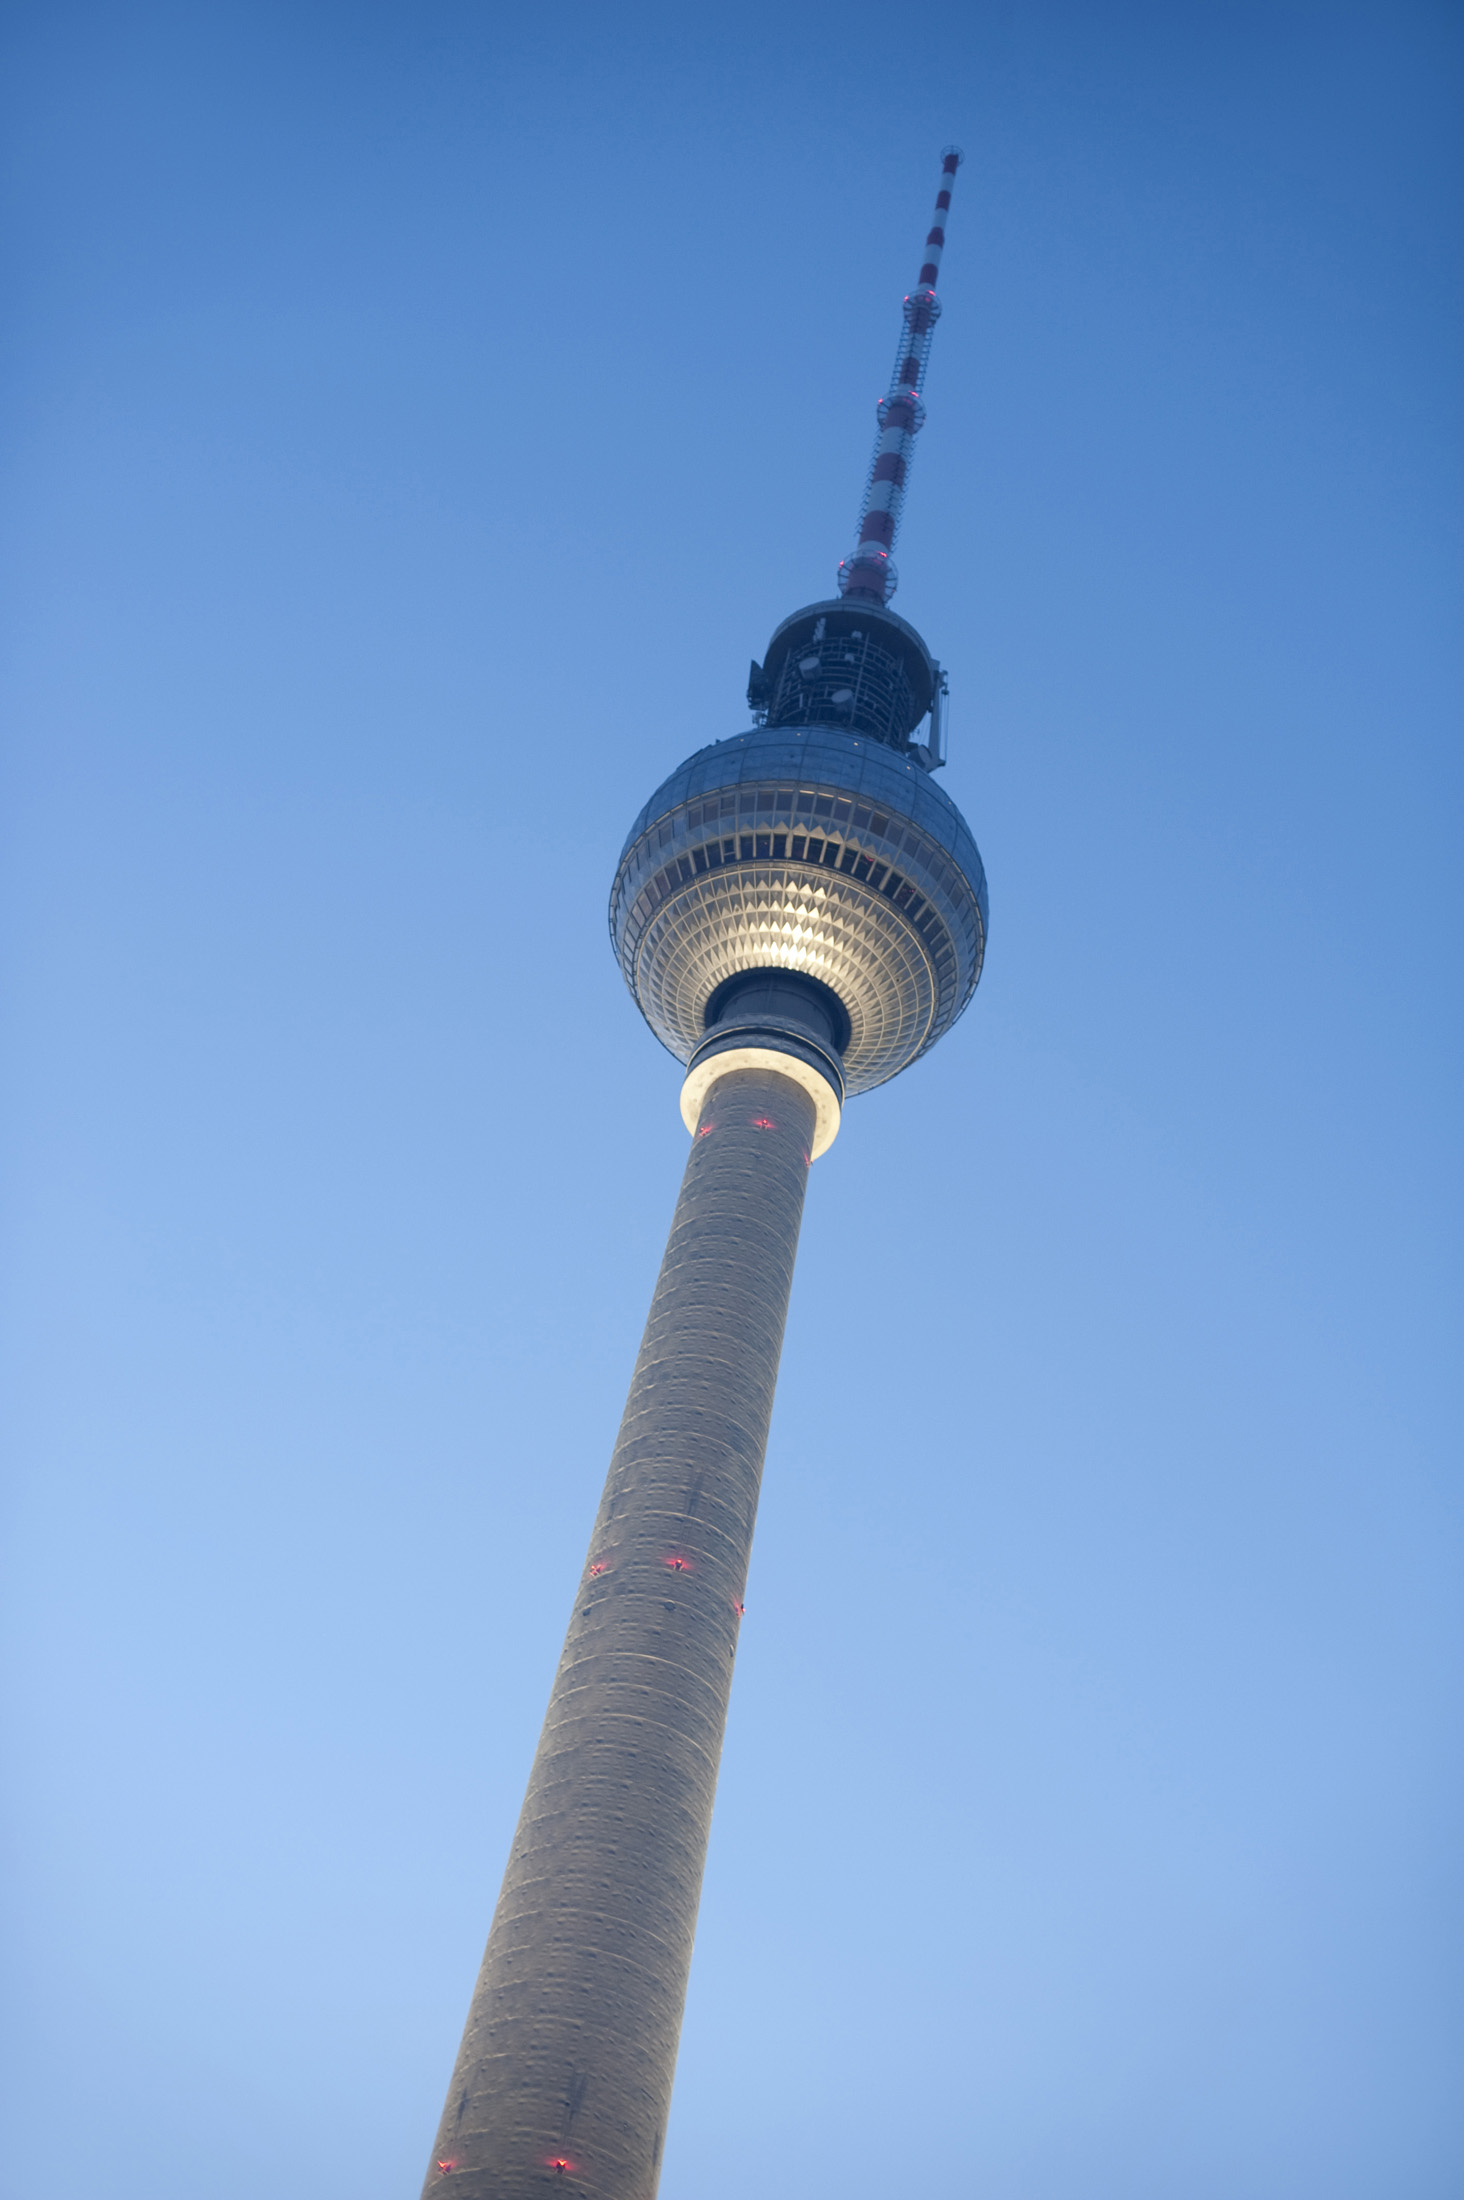 looking up at the berlin tv tower or fernsehturm